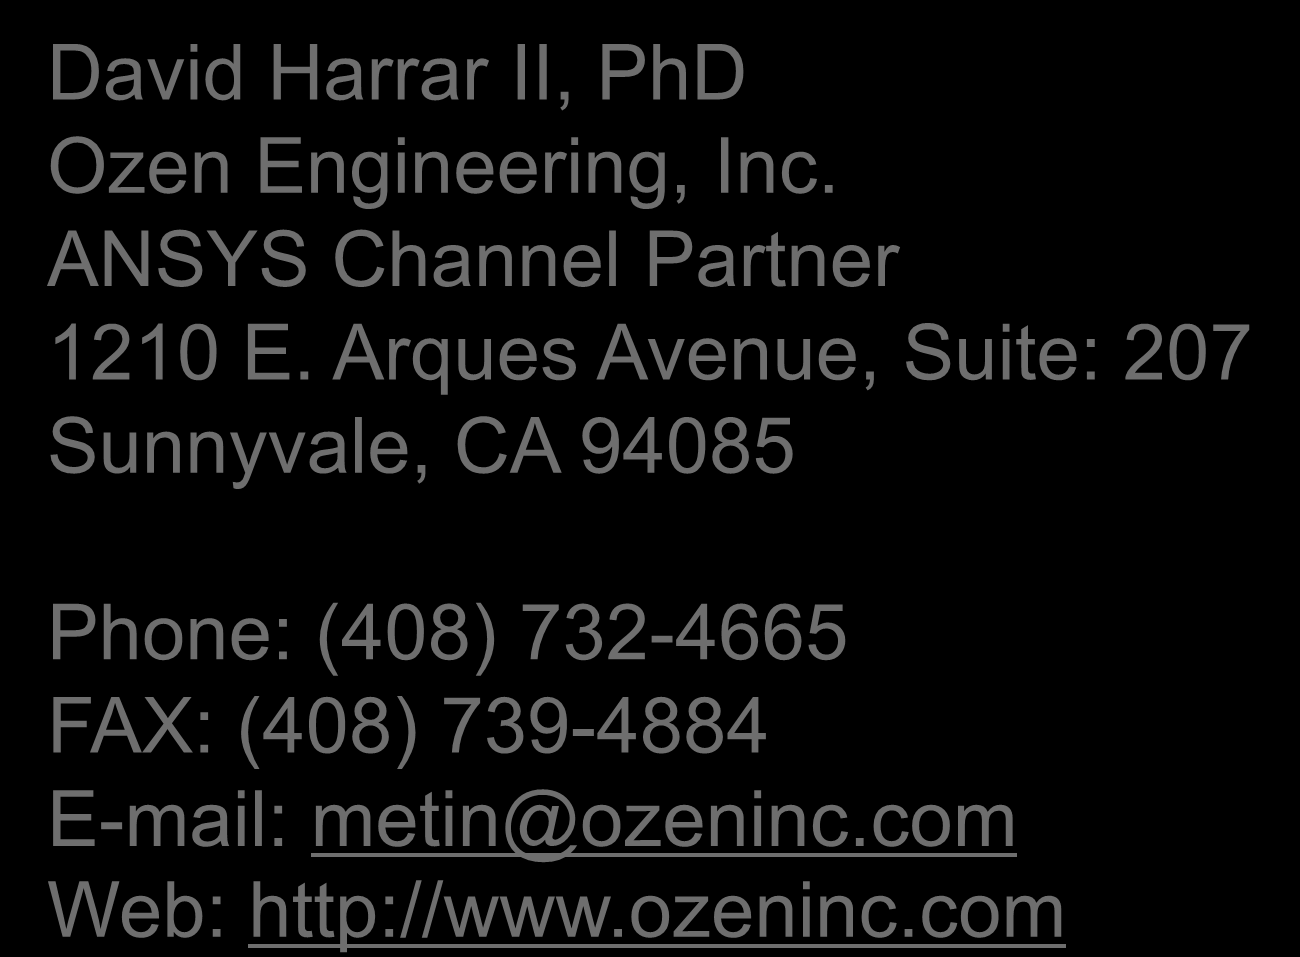 Contact Information David Harrar II, PhD Ozen Engineering, Inc. ANSYS Channel Partner 1210 E.